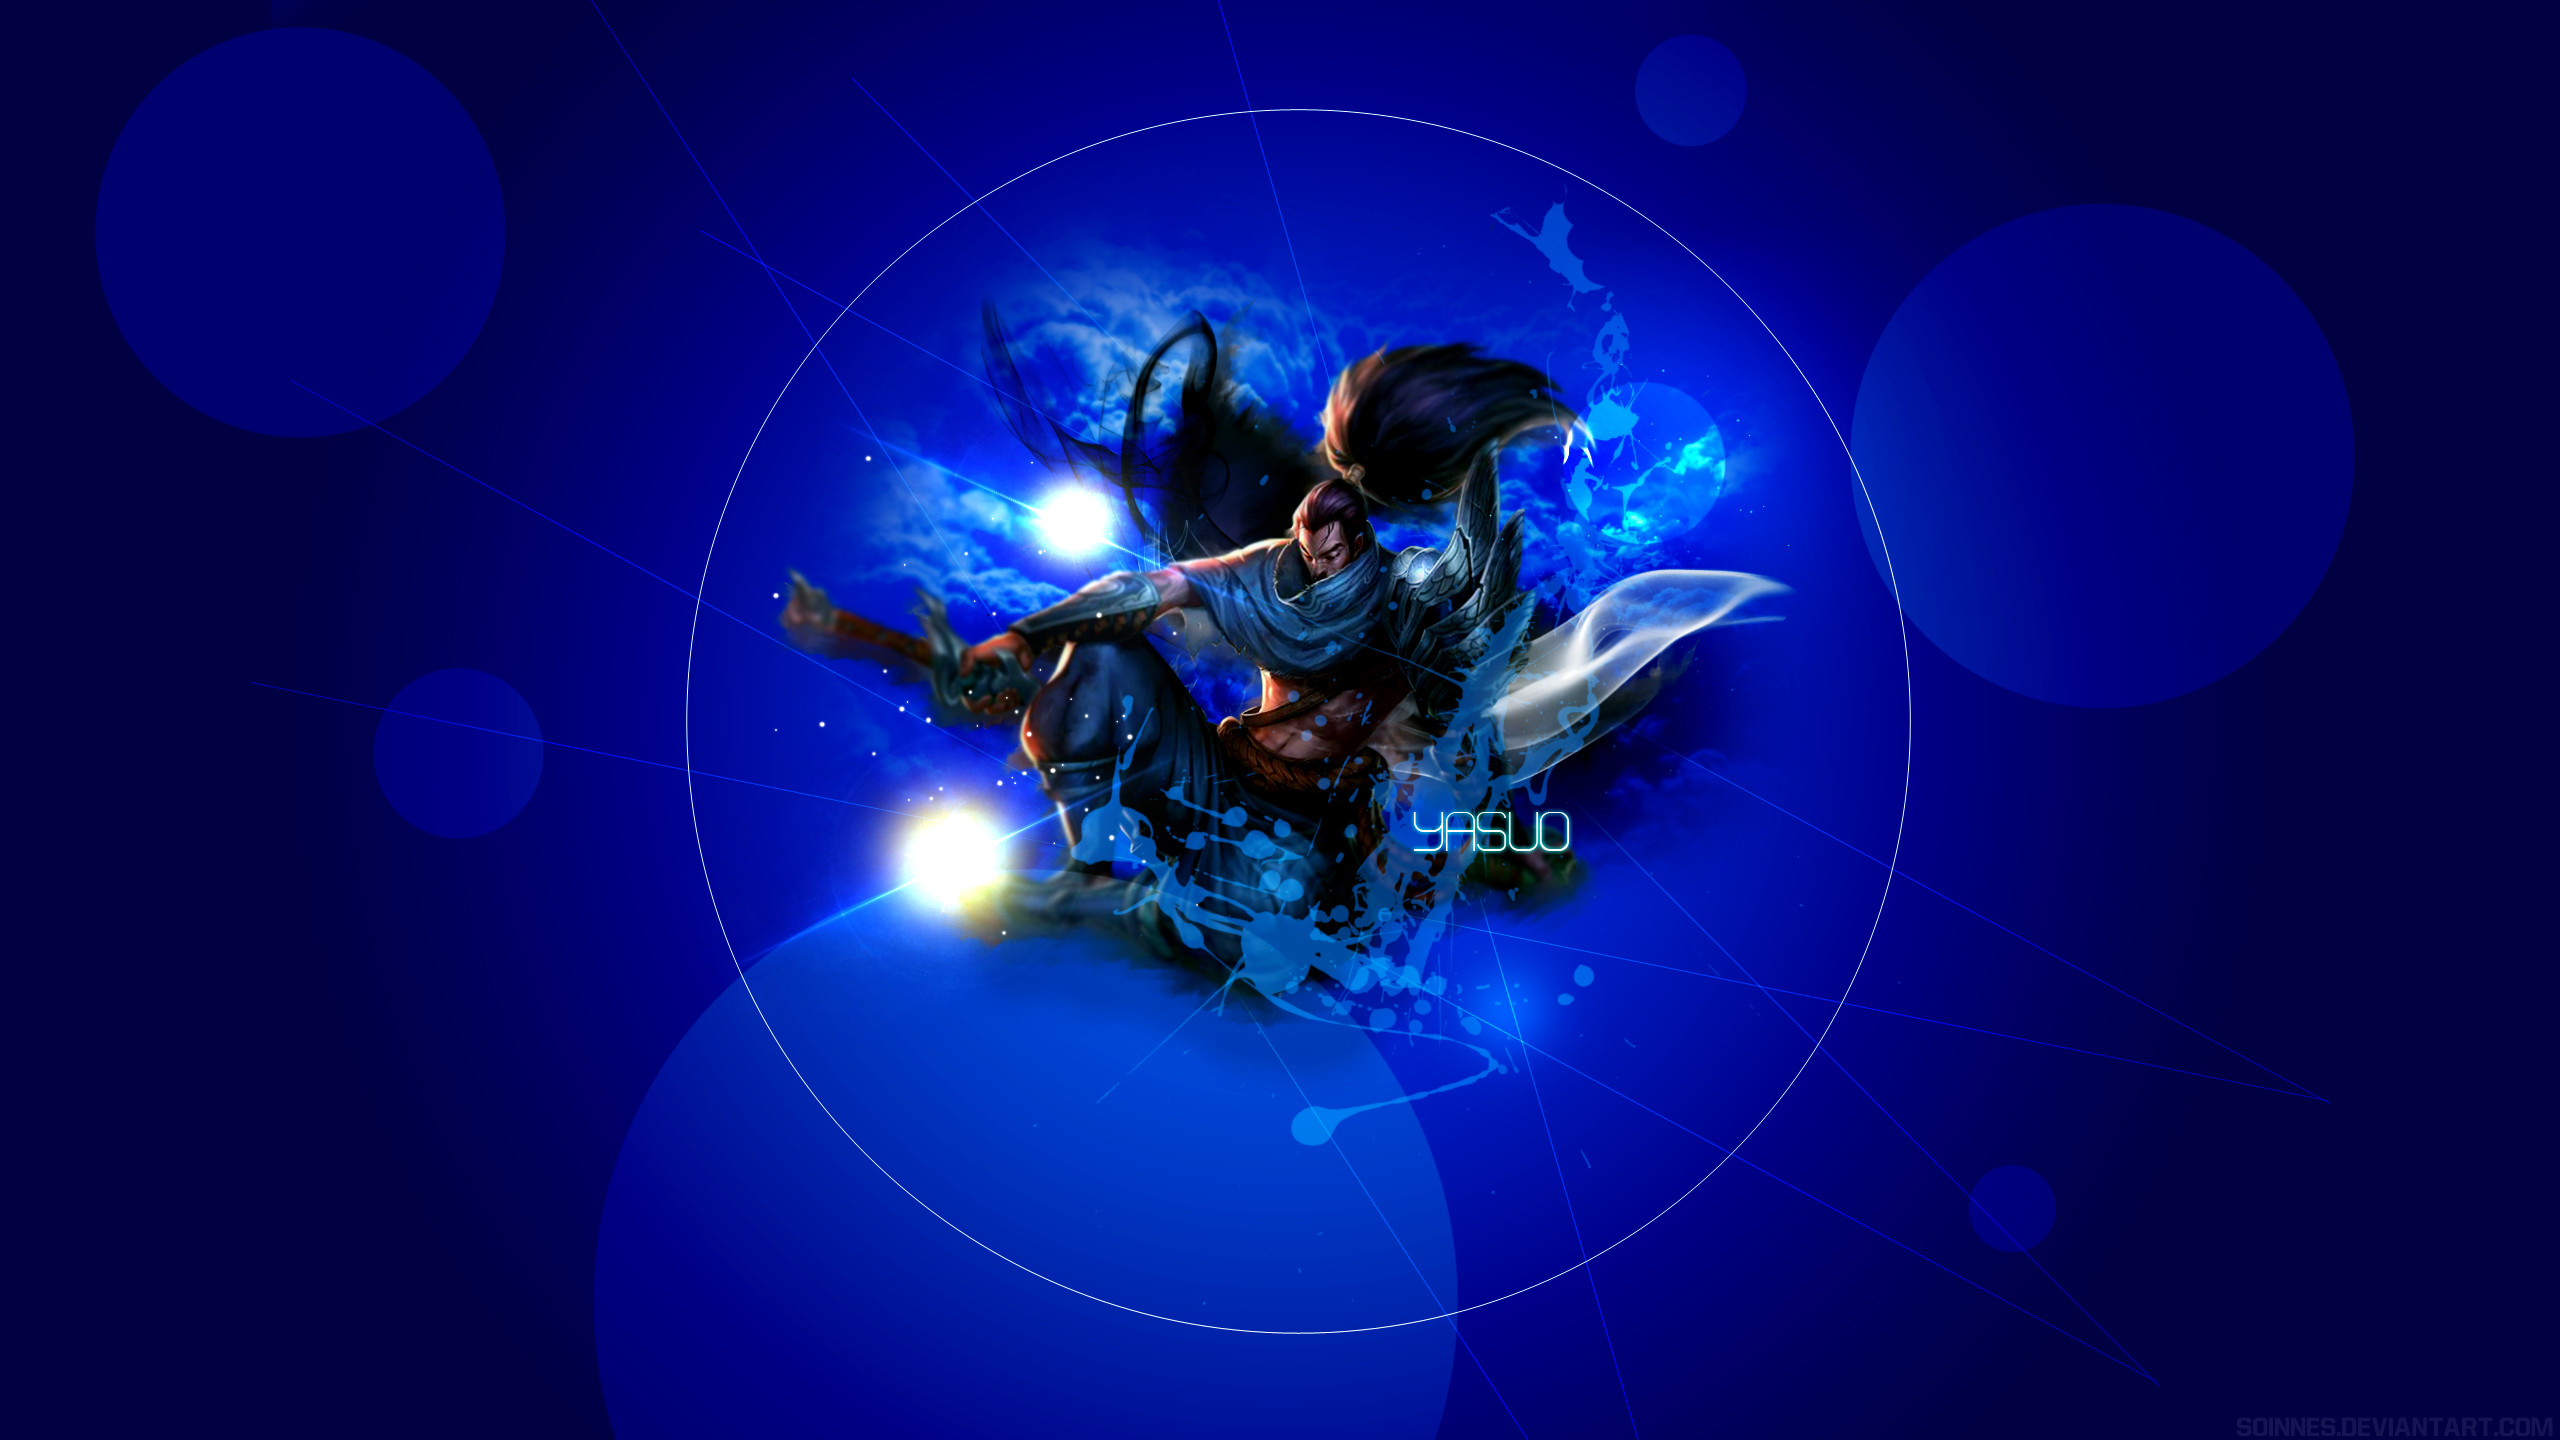 High Resolution Project Yasuo Wallpapers, Michayla Maylor